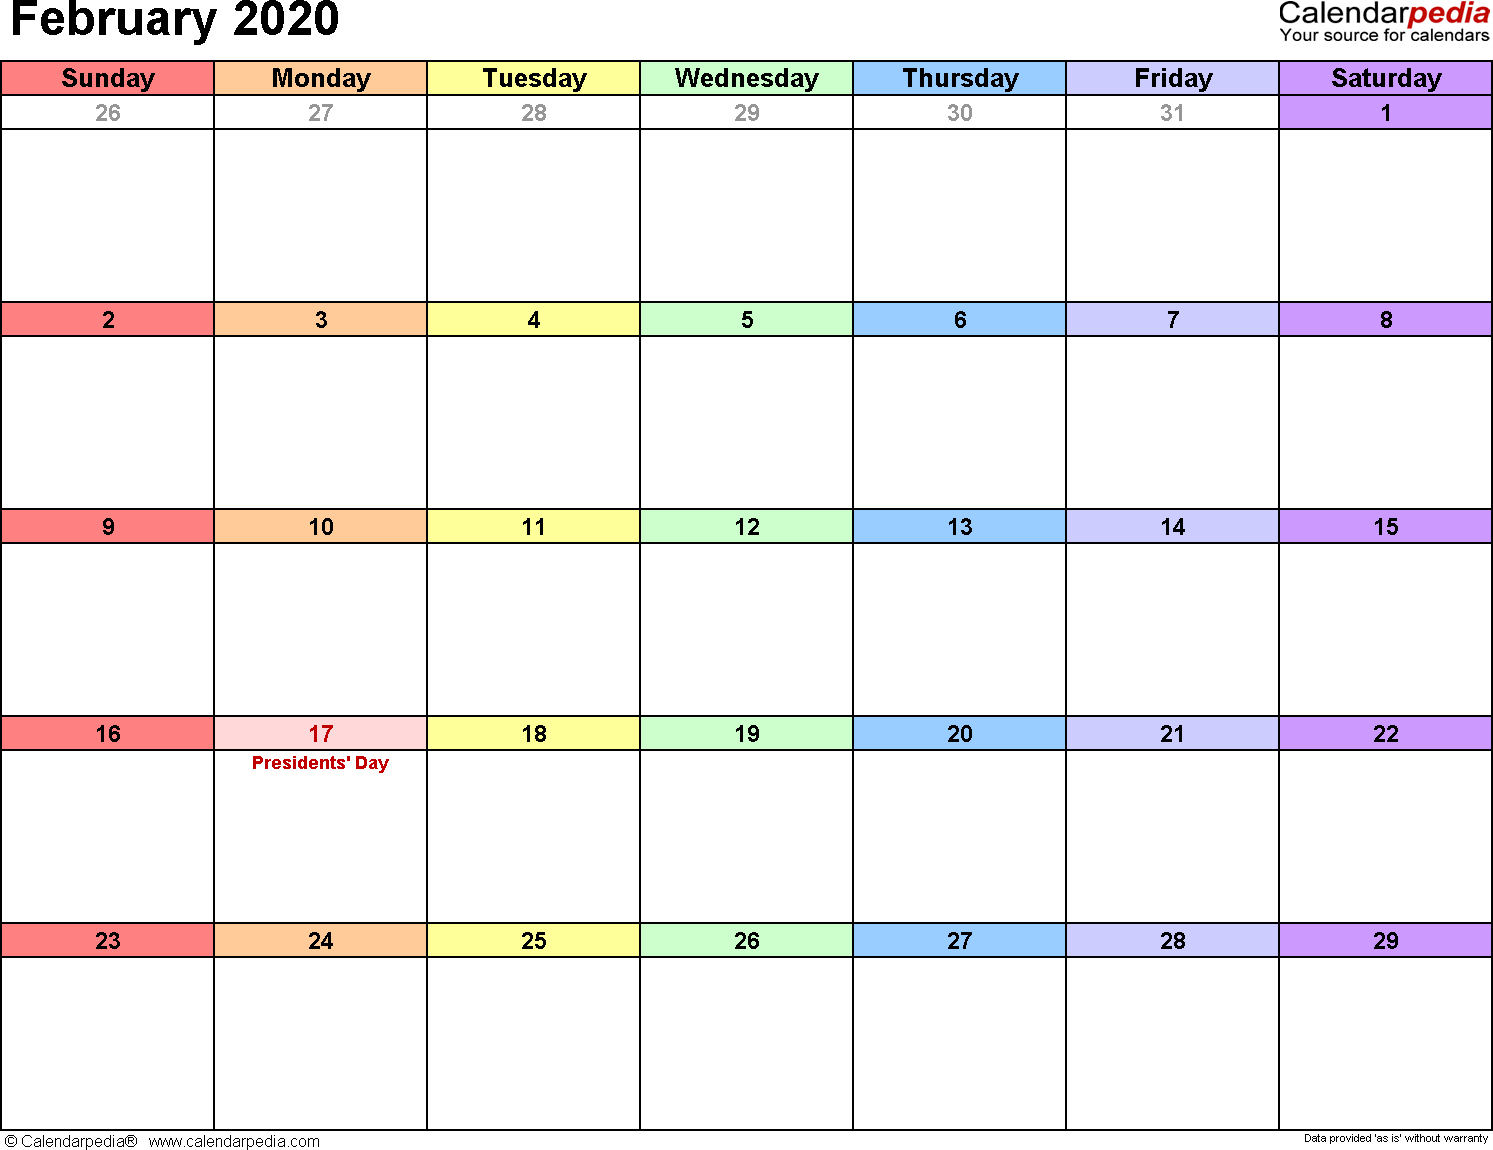 February Calendar 2020 February 2020 Calendars for Word, Excel & PDF